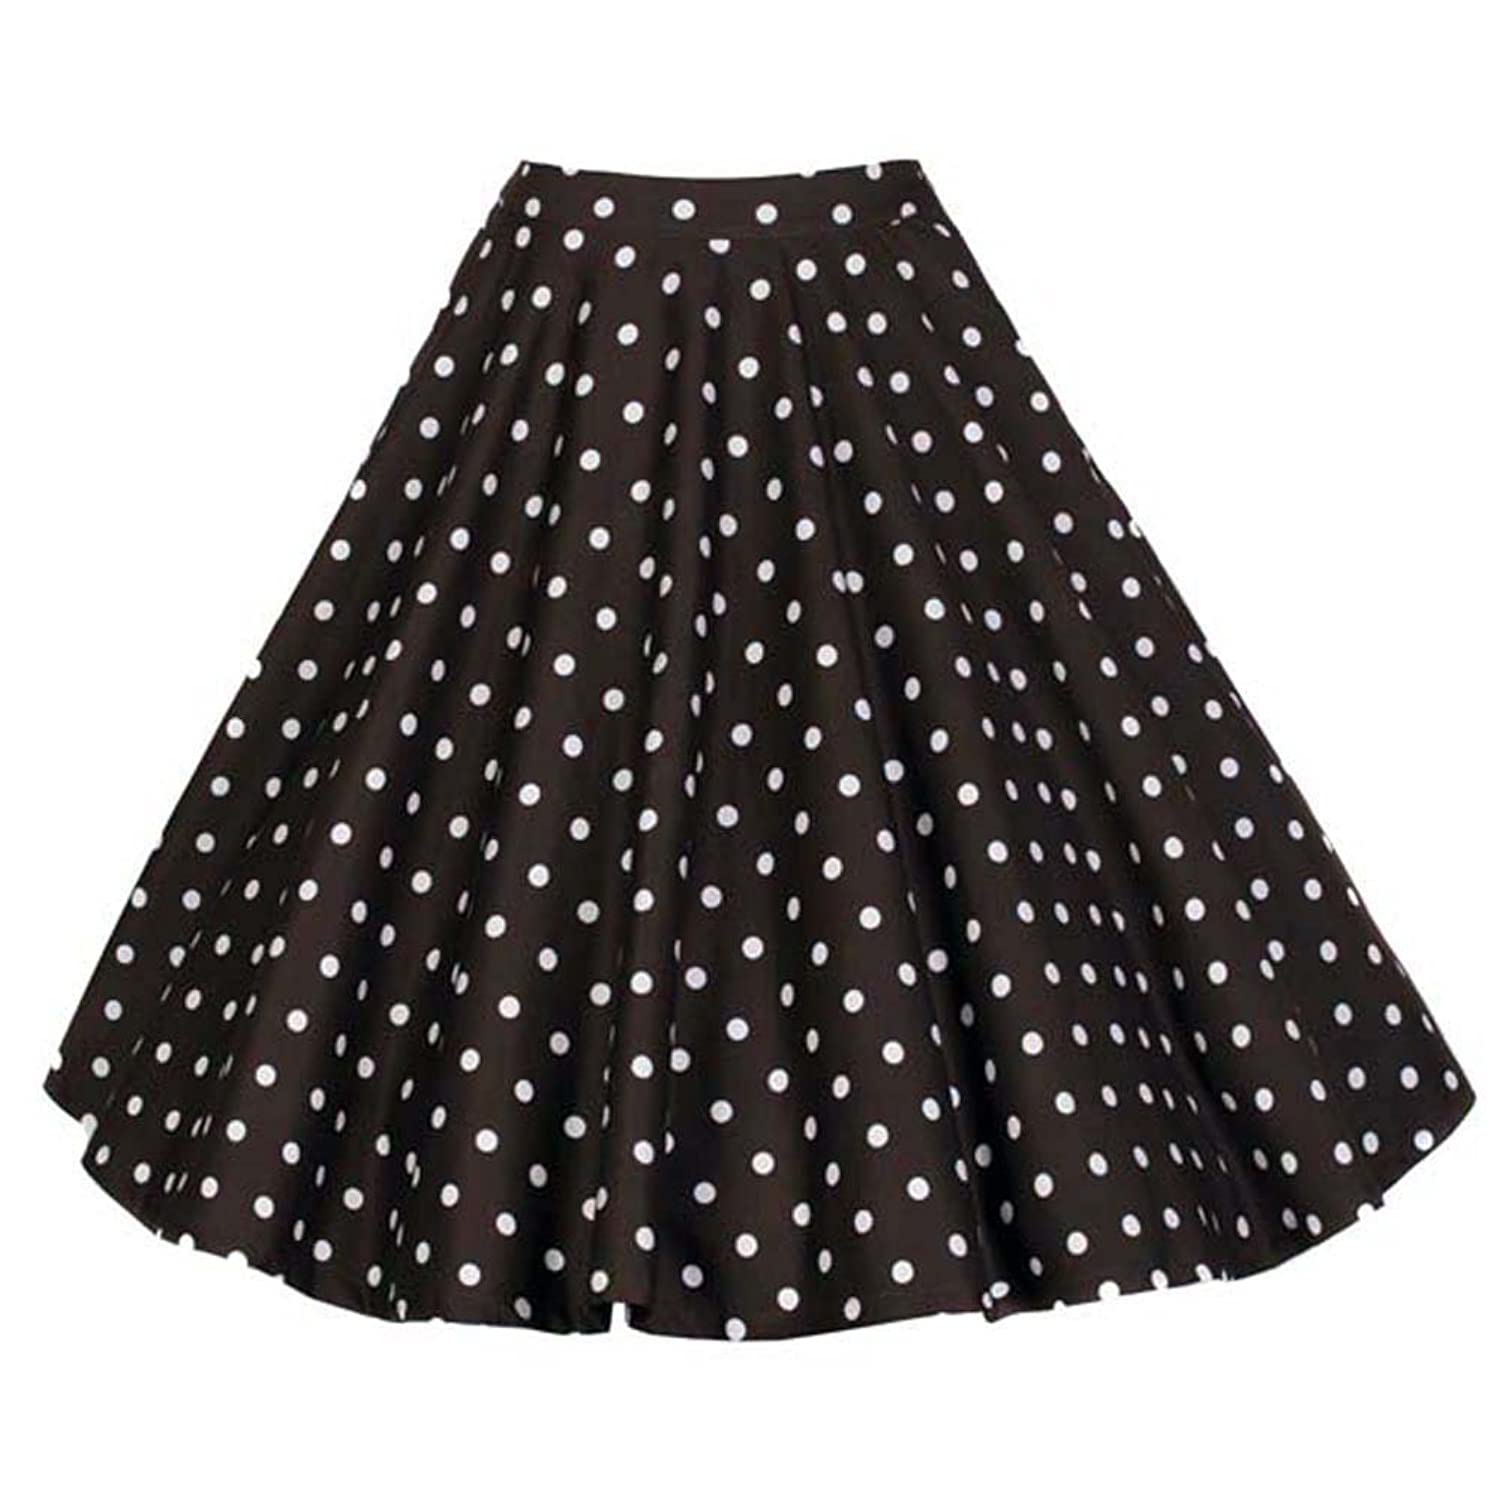 Joansam Women's Knee Length Flare Floral Polka Dot A Line Full Circle ockabilly Swing Casual Skirt Patterns